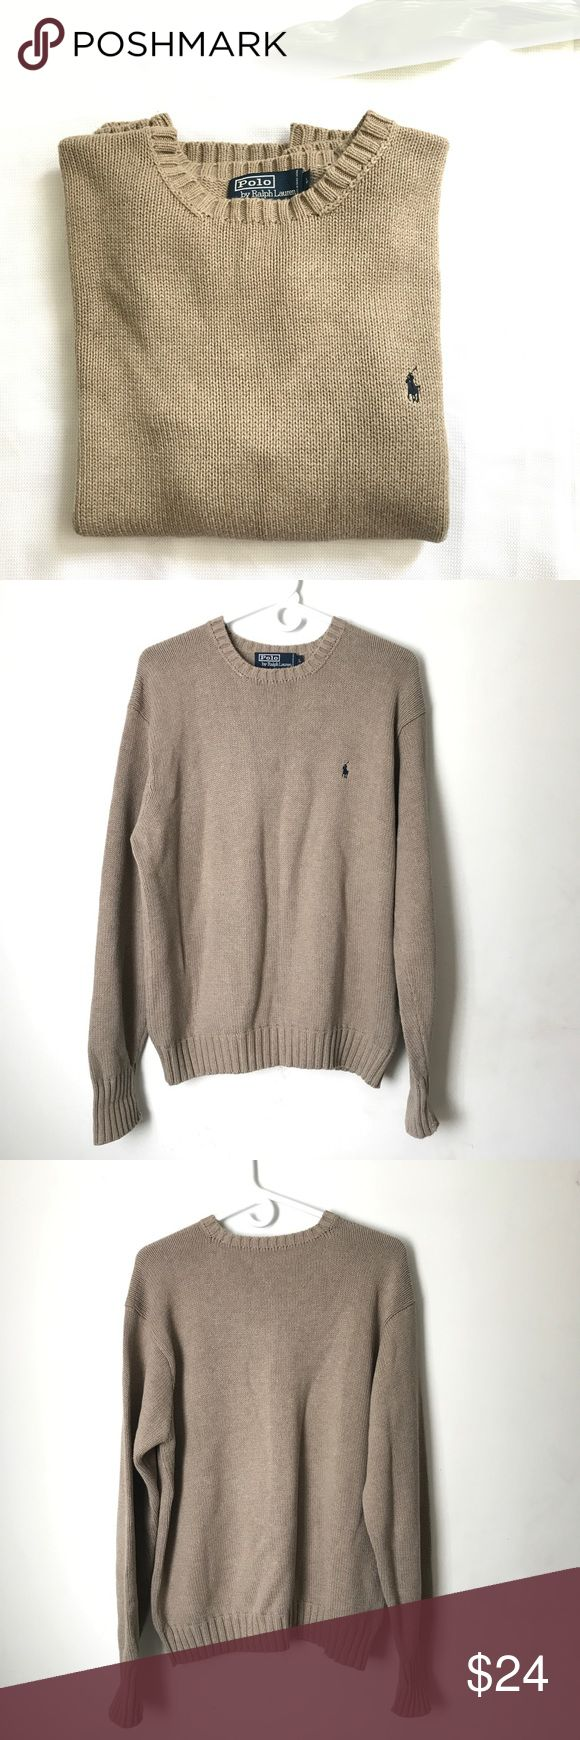 Polo Ralph Lauren Men's Sweater Pull Over Polo Ralph Lauren Men's  Crewneck Sweater, in Excellent Condition, Size Large, 100% Cotton, measurement lying flat, armpit to armpit is 23 inches, Shoulder to hem- 25 inches. Polo by Ralph Lauren Sweaters Crewneck